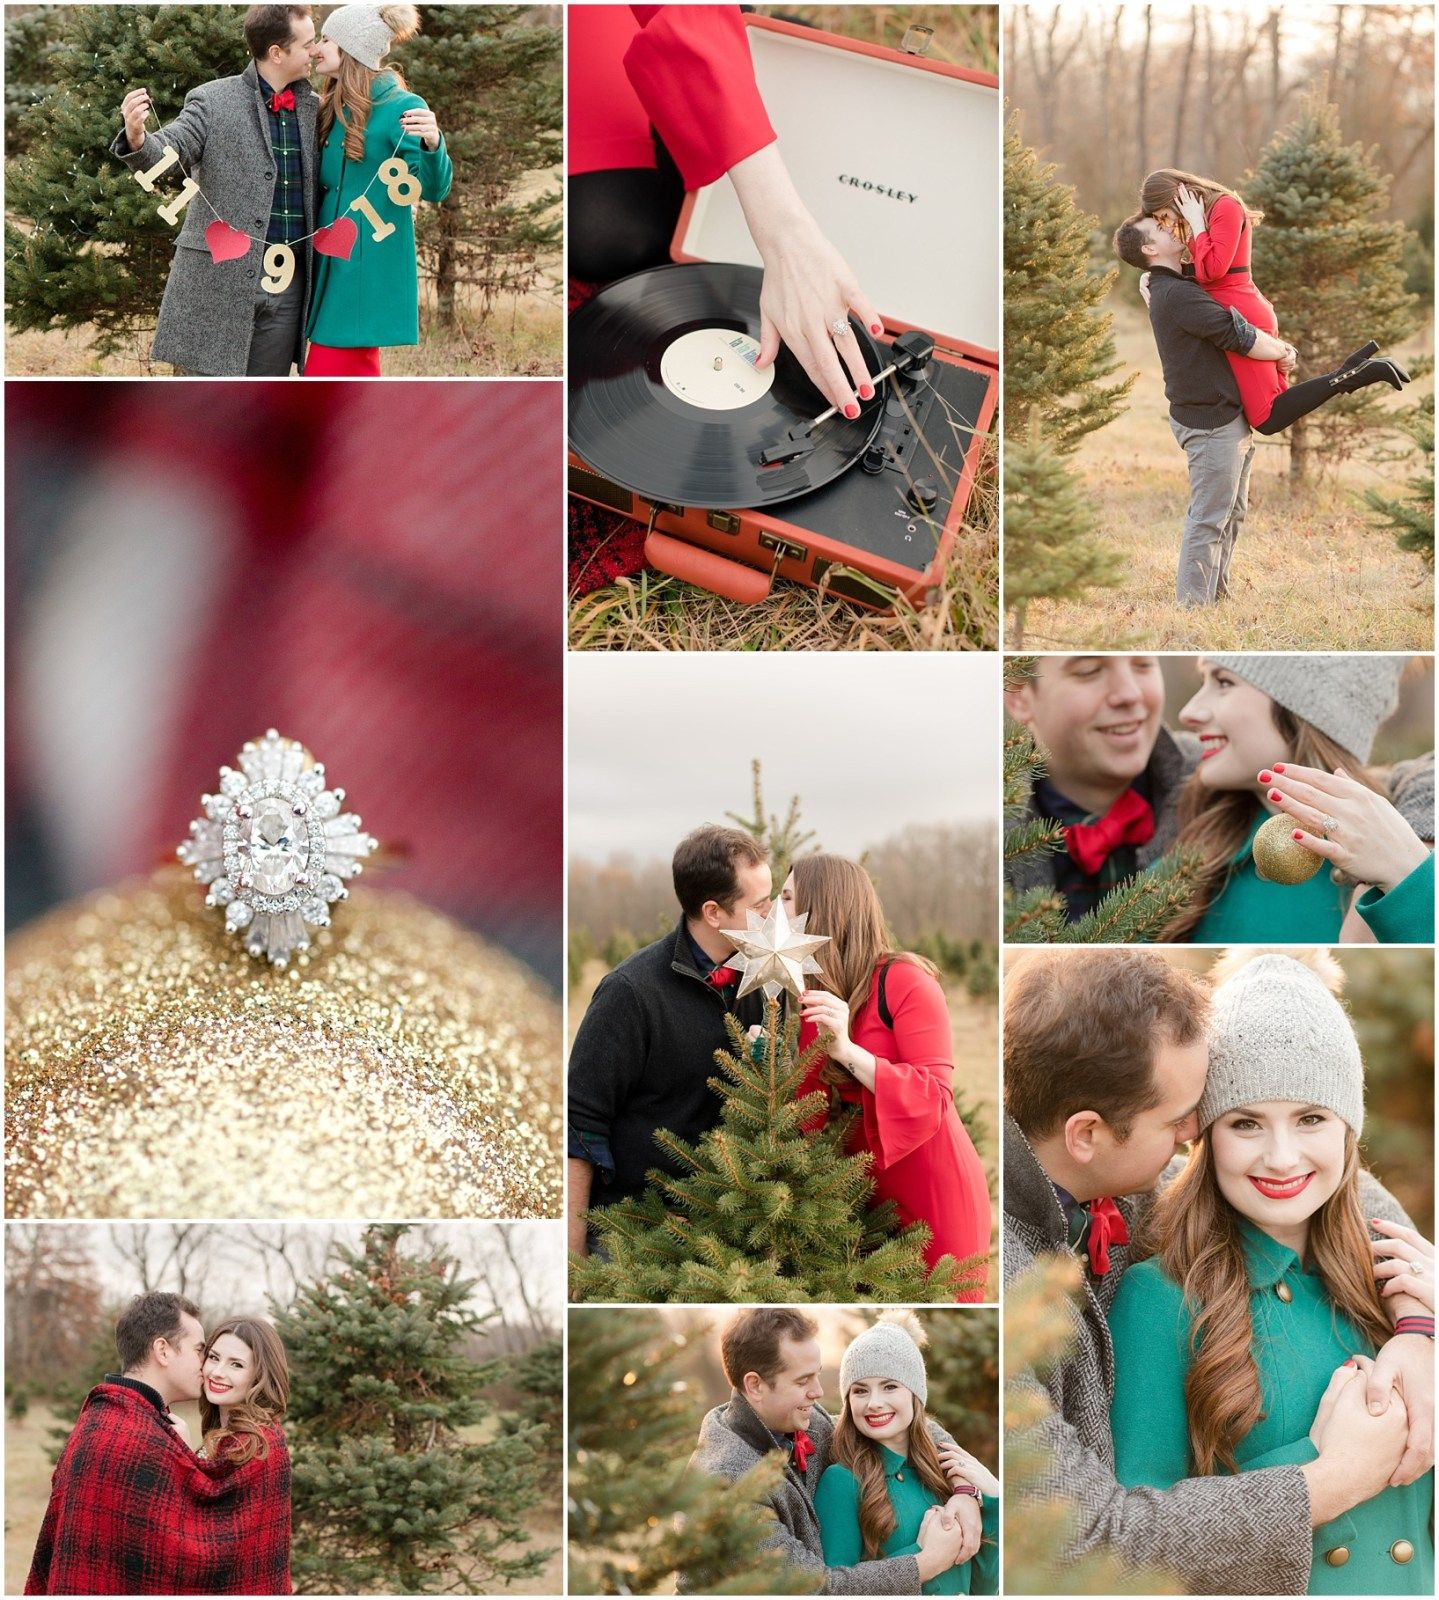 Christmas Tree Farm Engagement Photos With Images Christmas Engagement Photos Farm Engagement Photos Christmas Tree Farm